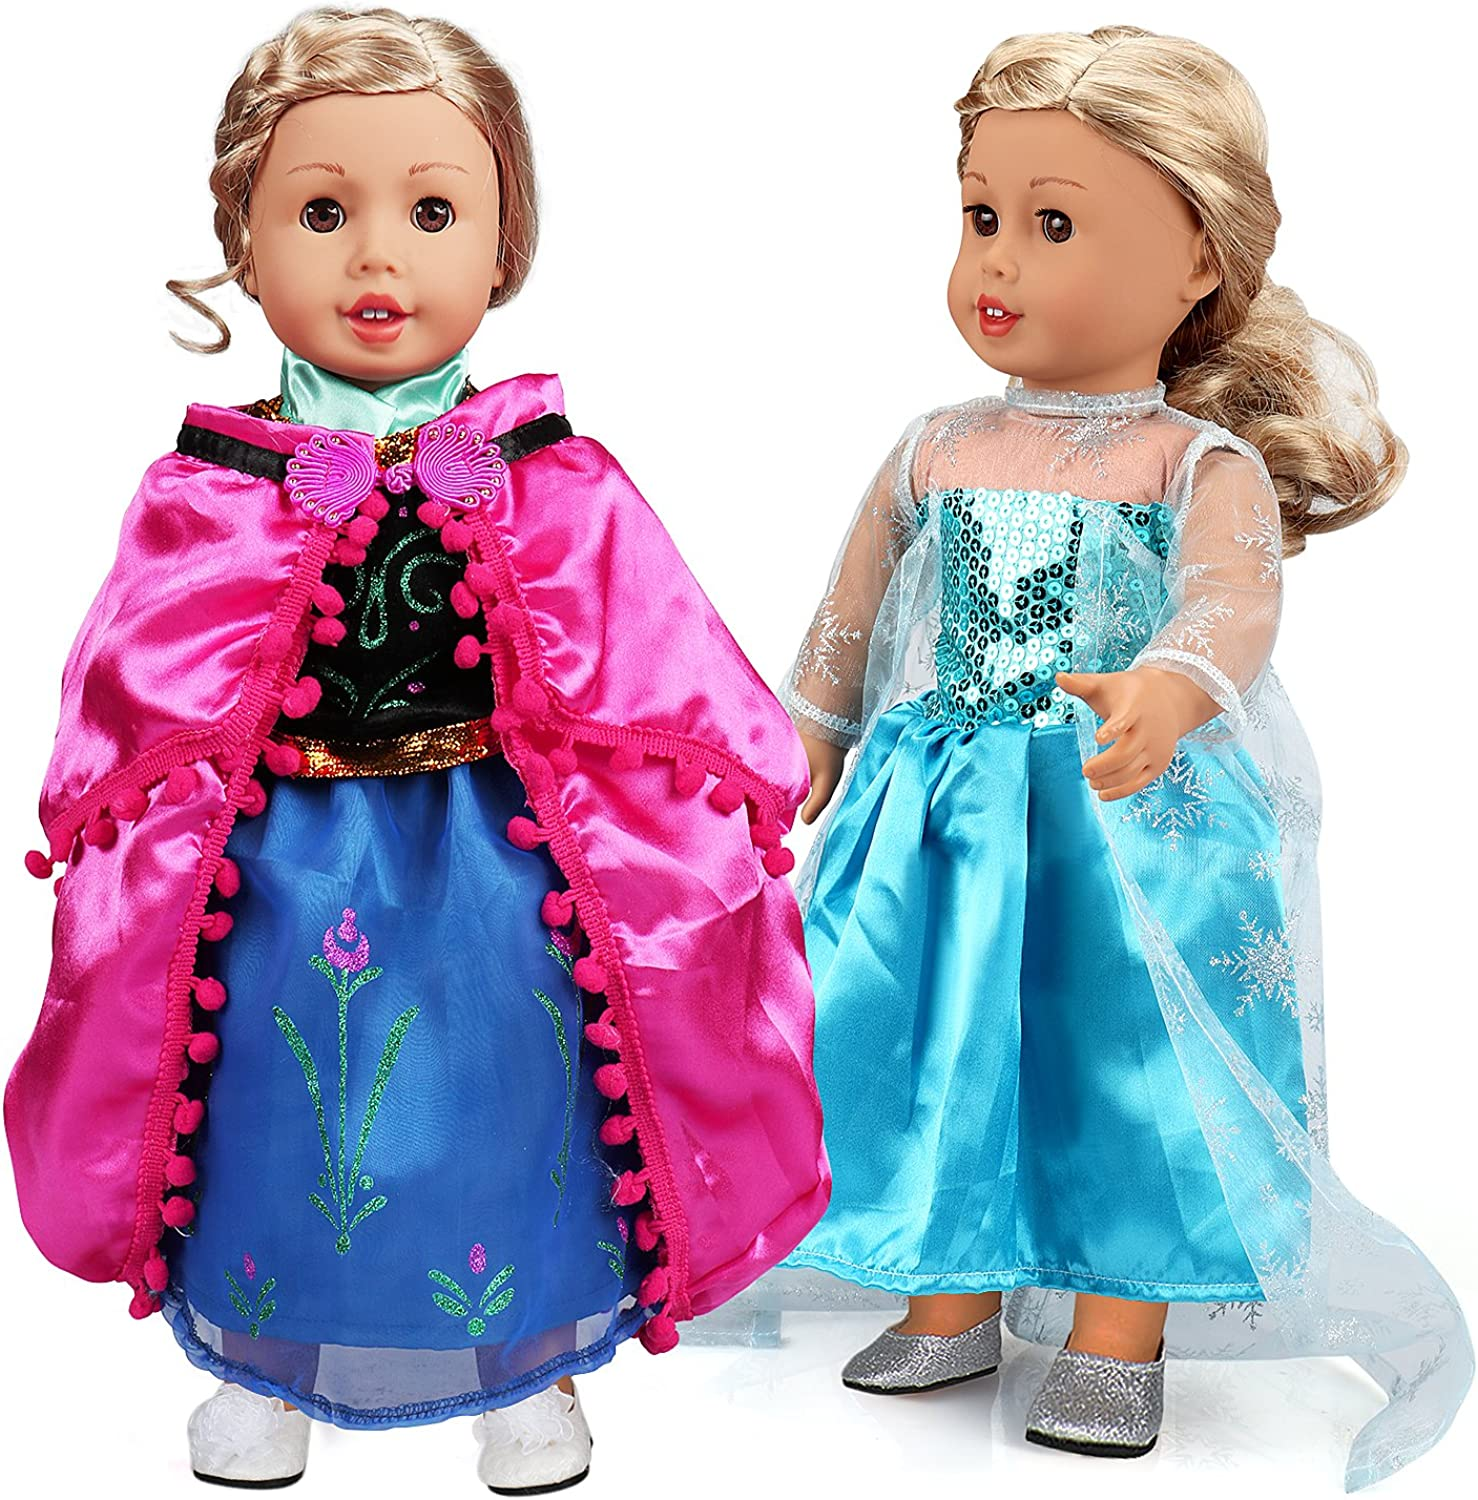 18 Inch Doll Clothes 2 Set Frozen Princess Dress Ball Gowns for American Girl Dolls by ANNTOY